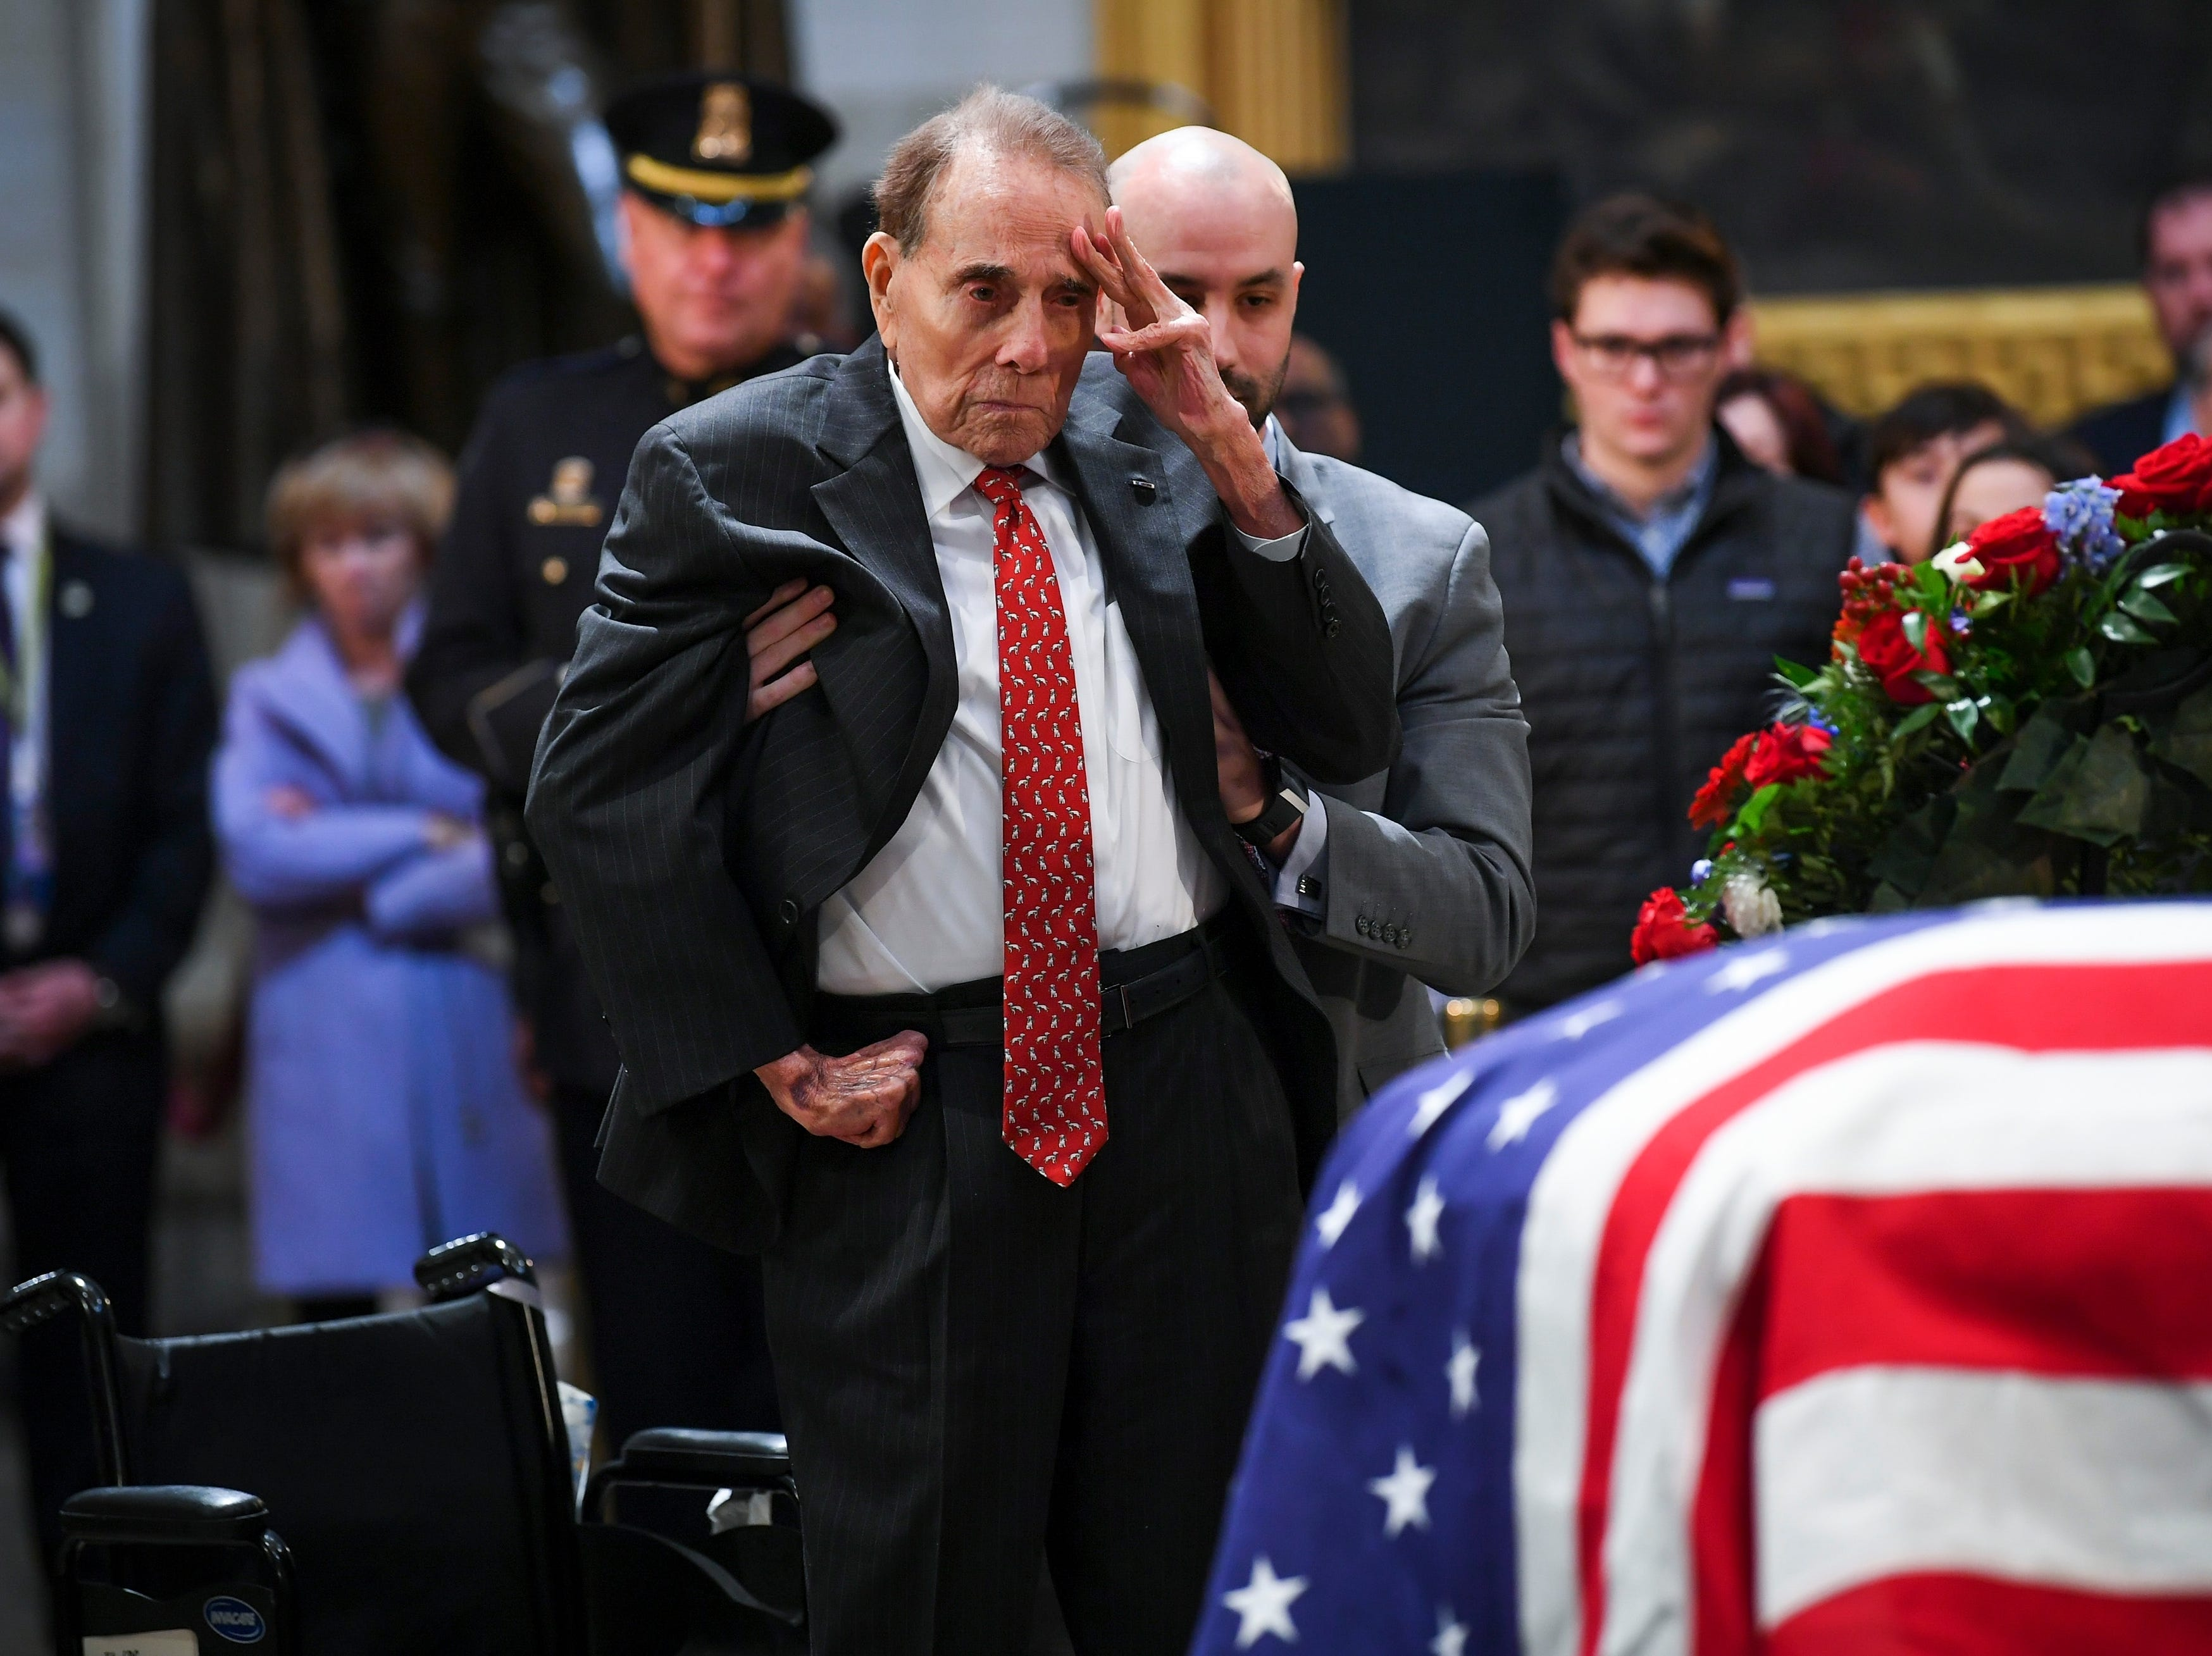 Former Sen. Bob Dole stands and salutes the casket of President George H.W. Bush who lies in state at the U.S. Capitol Rotunda on Dec. 4, 2018.